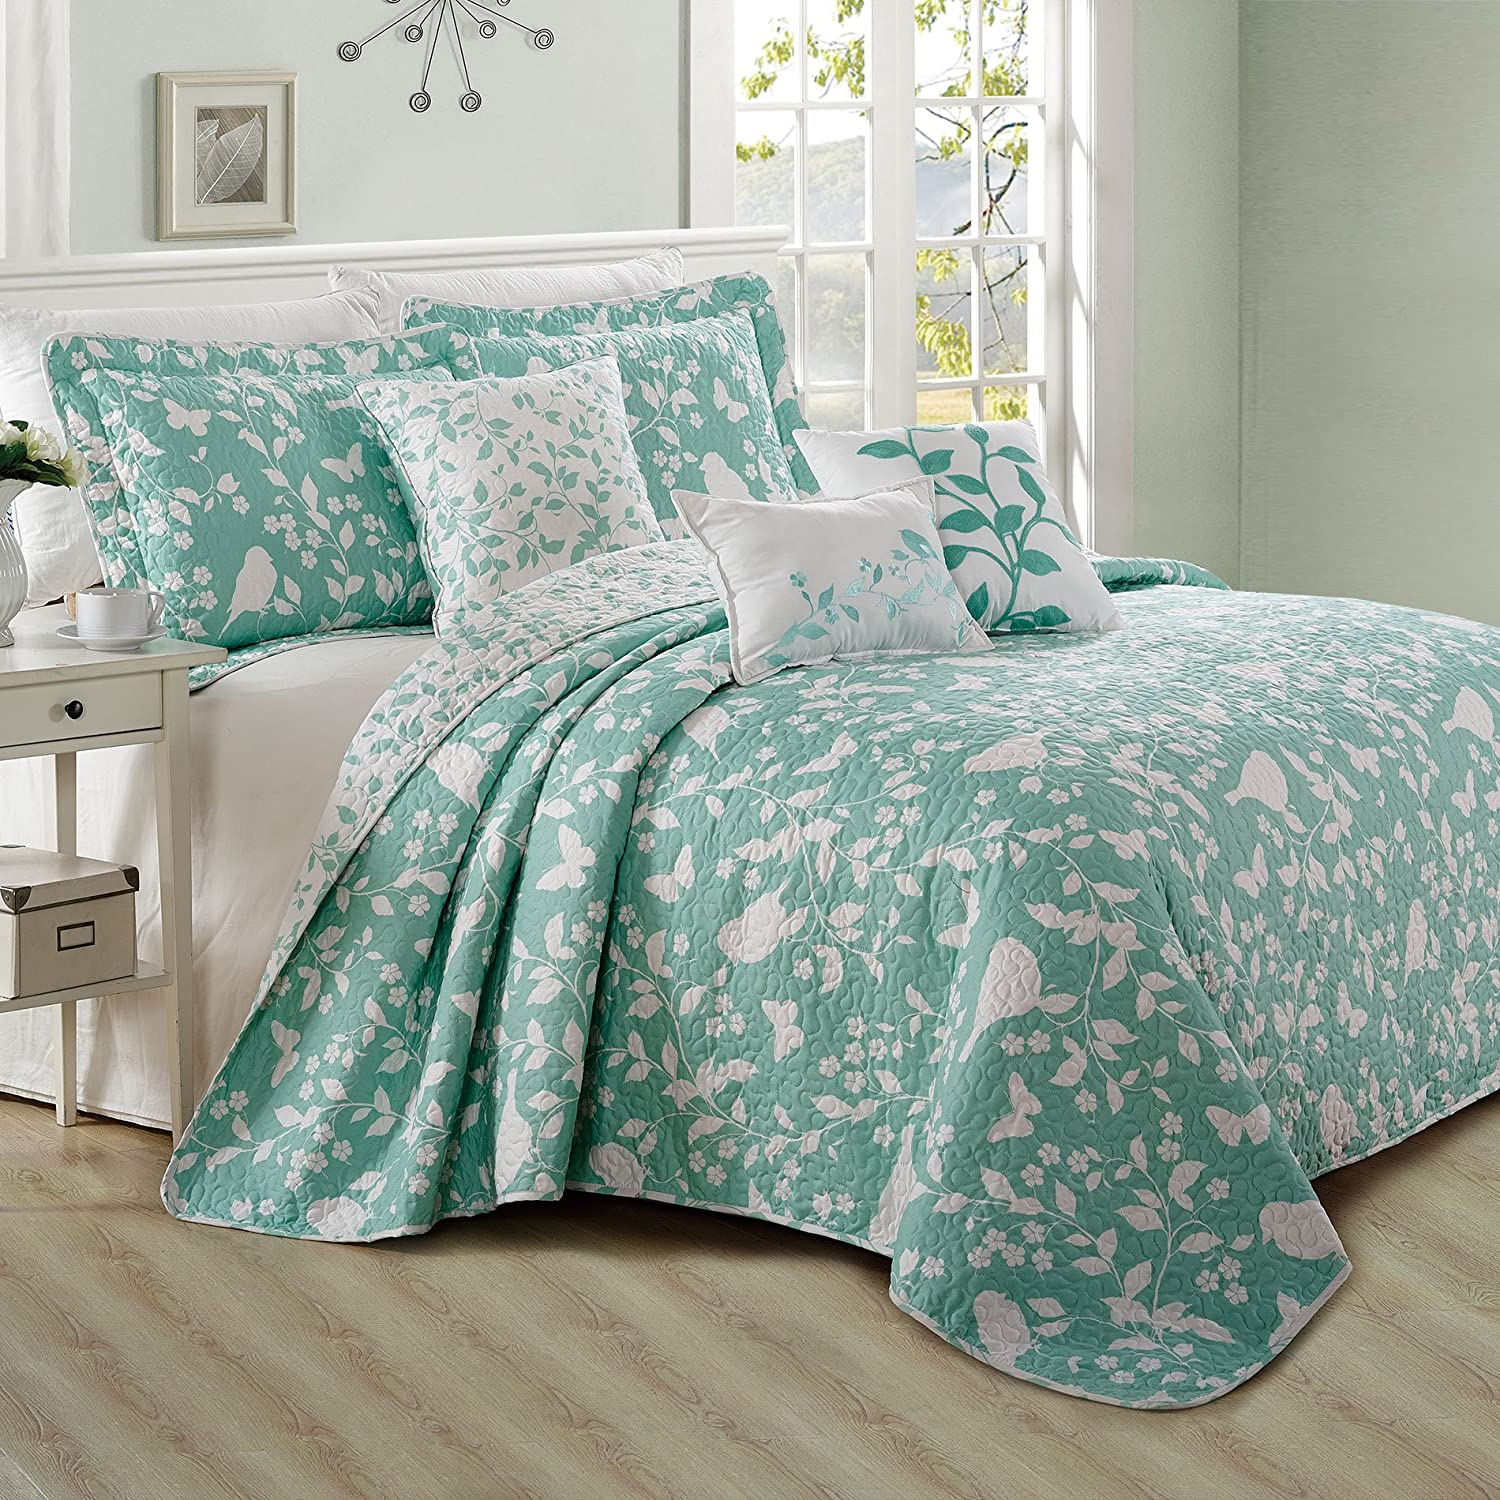 Home Soft Things Serenta 6 Piece Bird Song Printed Microfiber Quilts Coverlet Set, King, Teal Turquoise